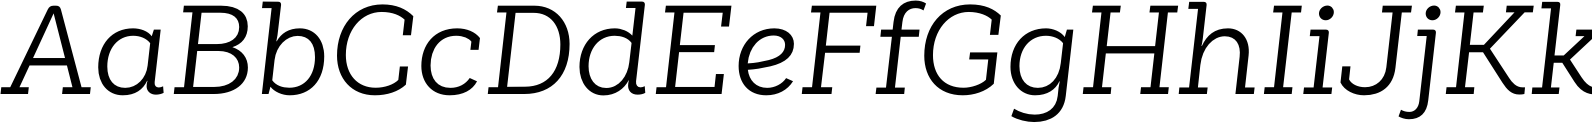 Weekly Alt Regular Italic Font